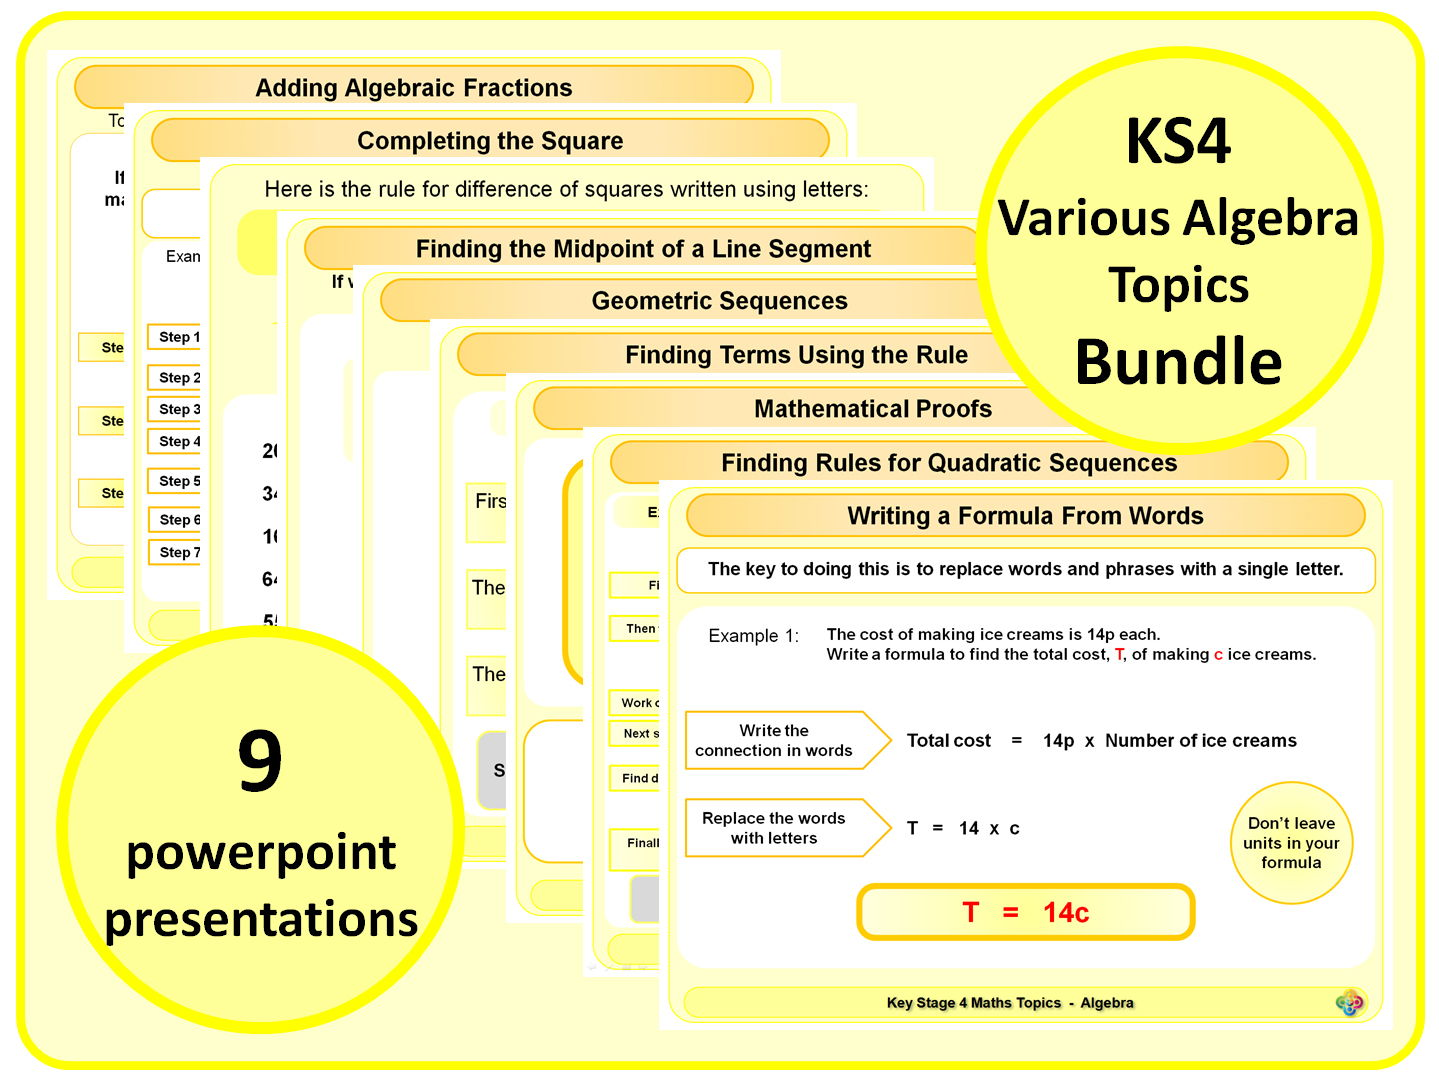 KS4 Various Algebra Topics